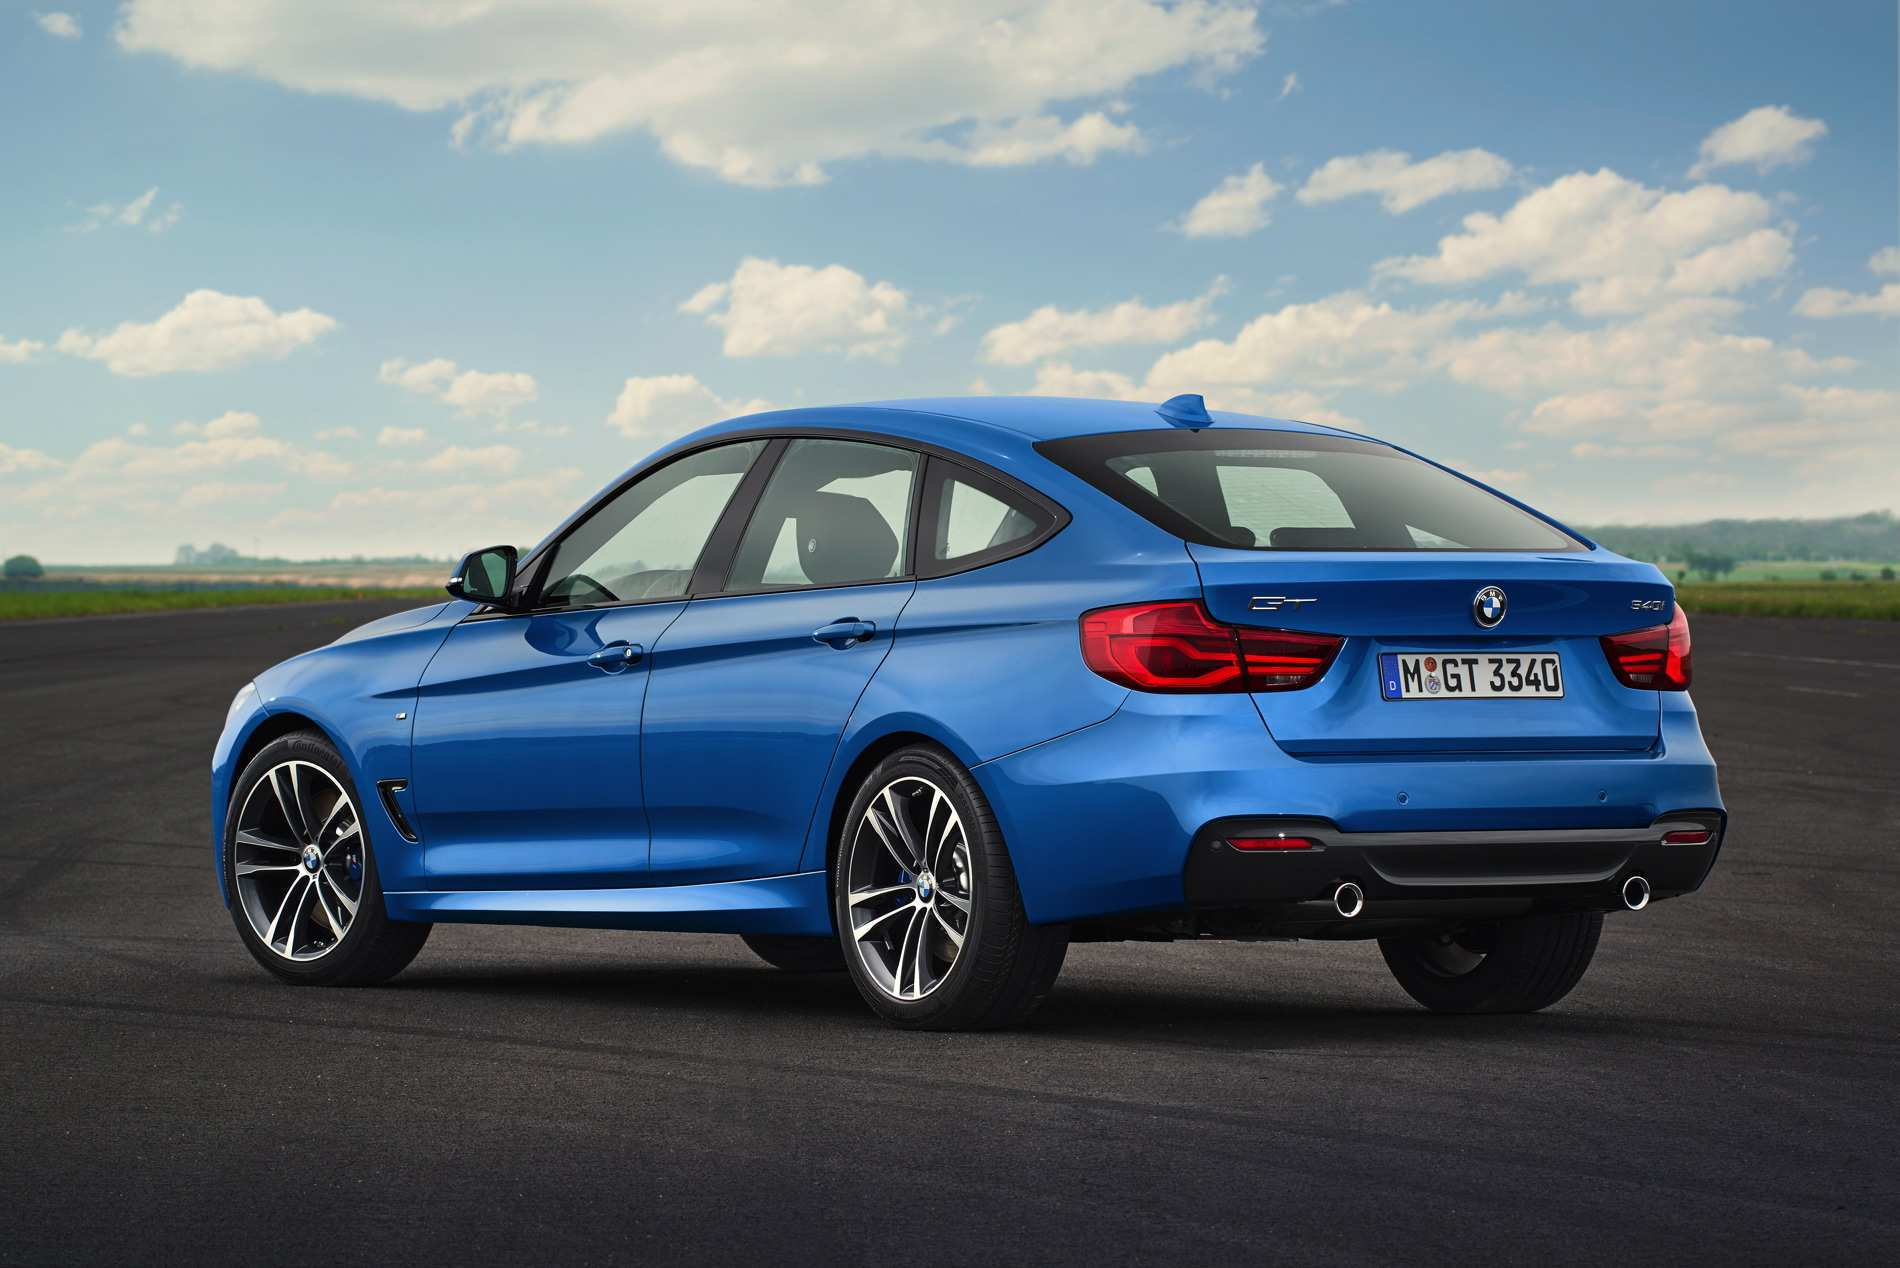 19 Best Review 2019 Bmw 3 Series Gt Price and Review by 2019 Bmw 3 Series Gt